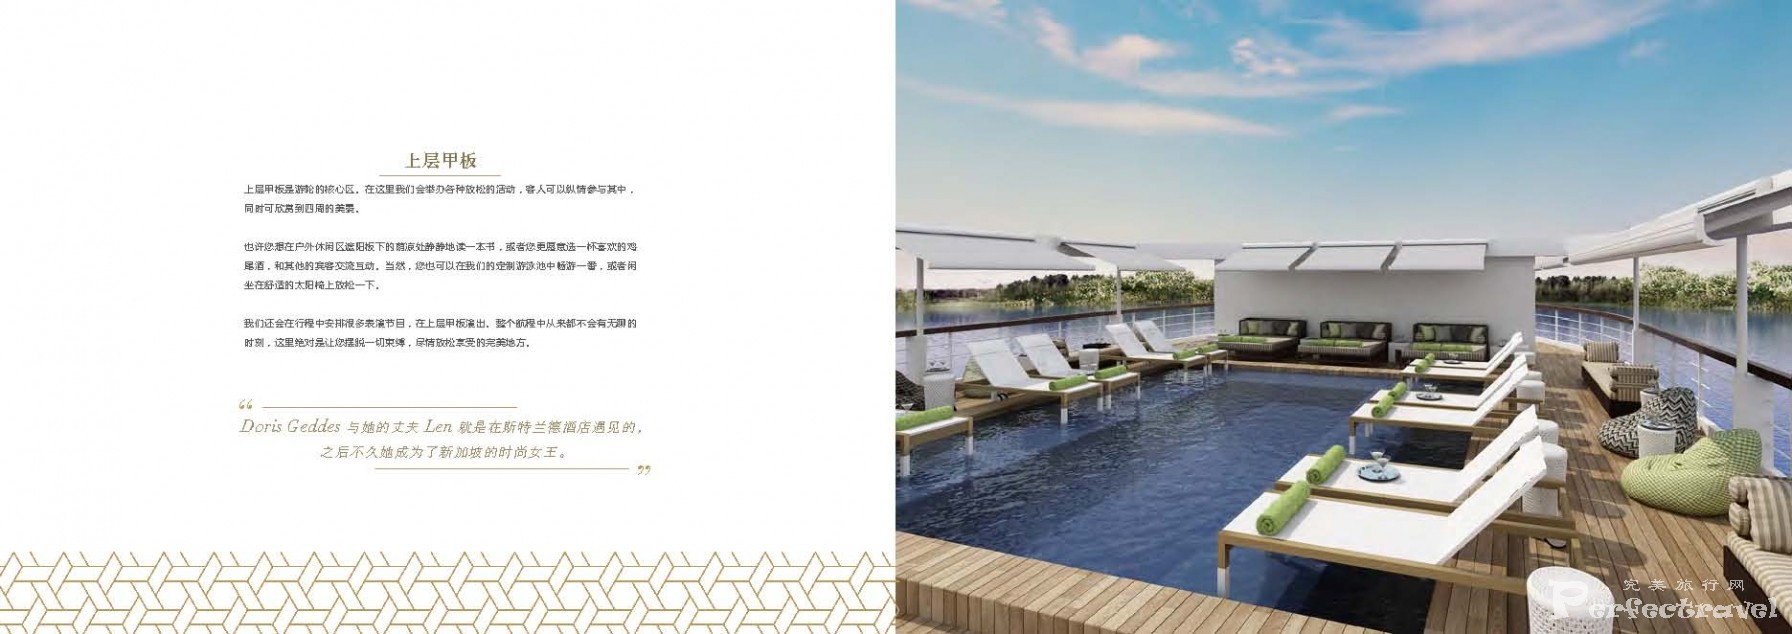 The Strand Cruise Brochure_CN_Page_11.jpg